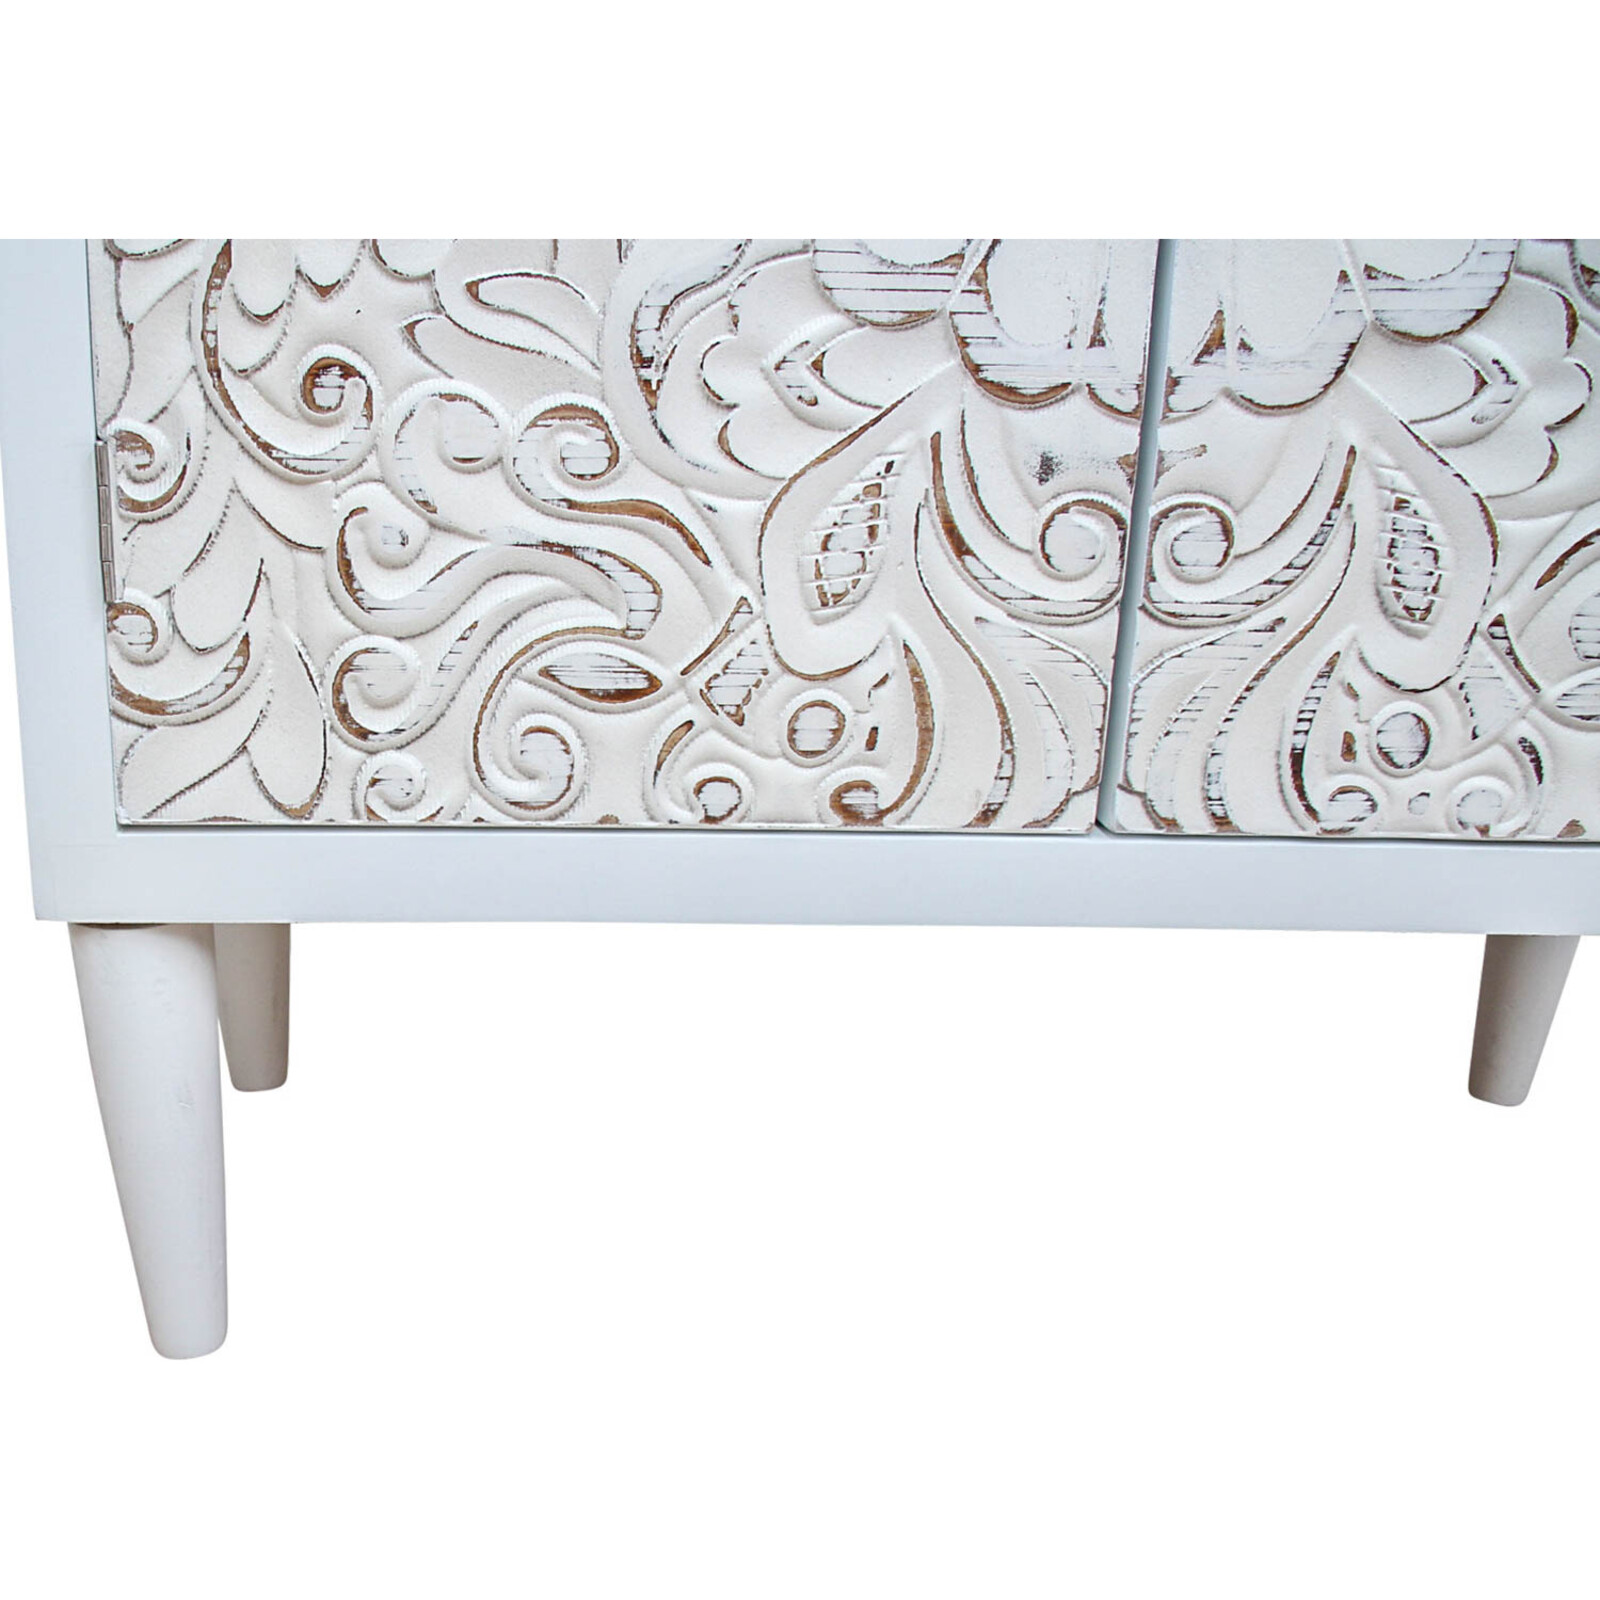 # Cabinet Ornate Mandala